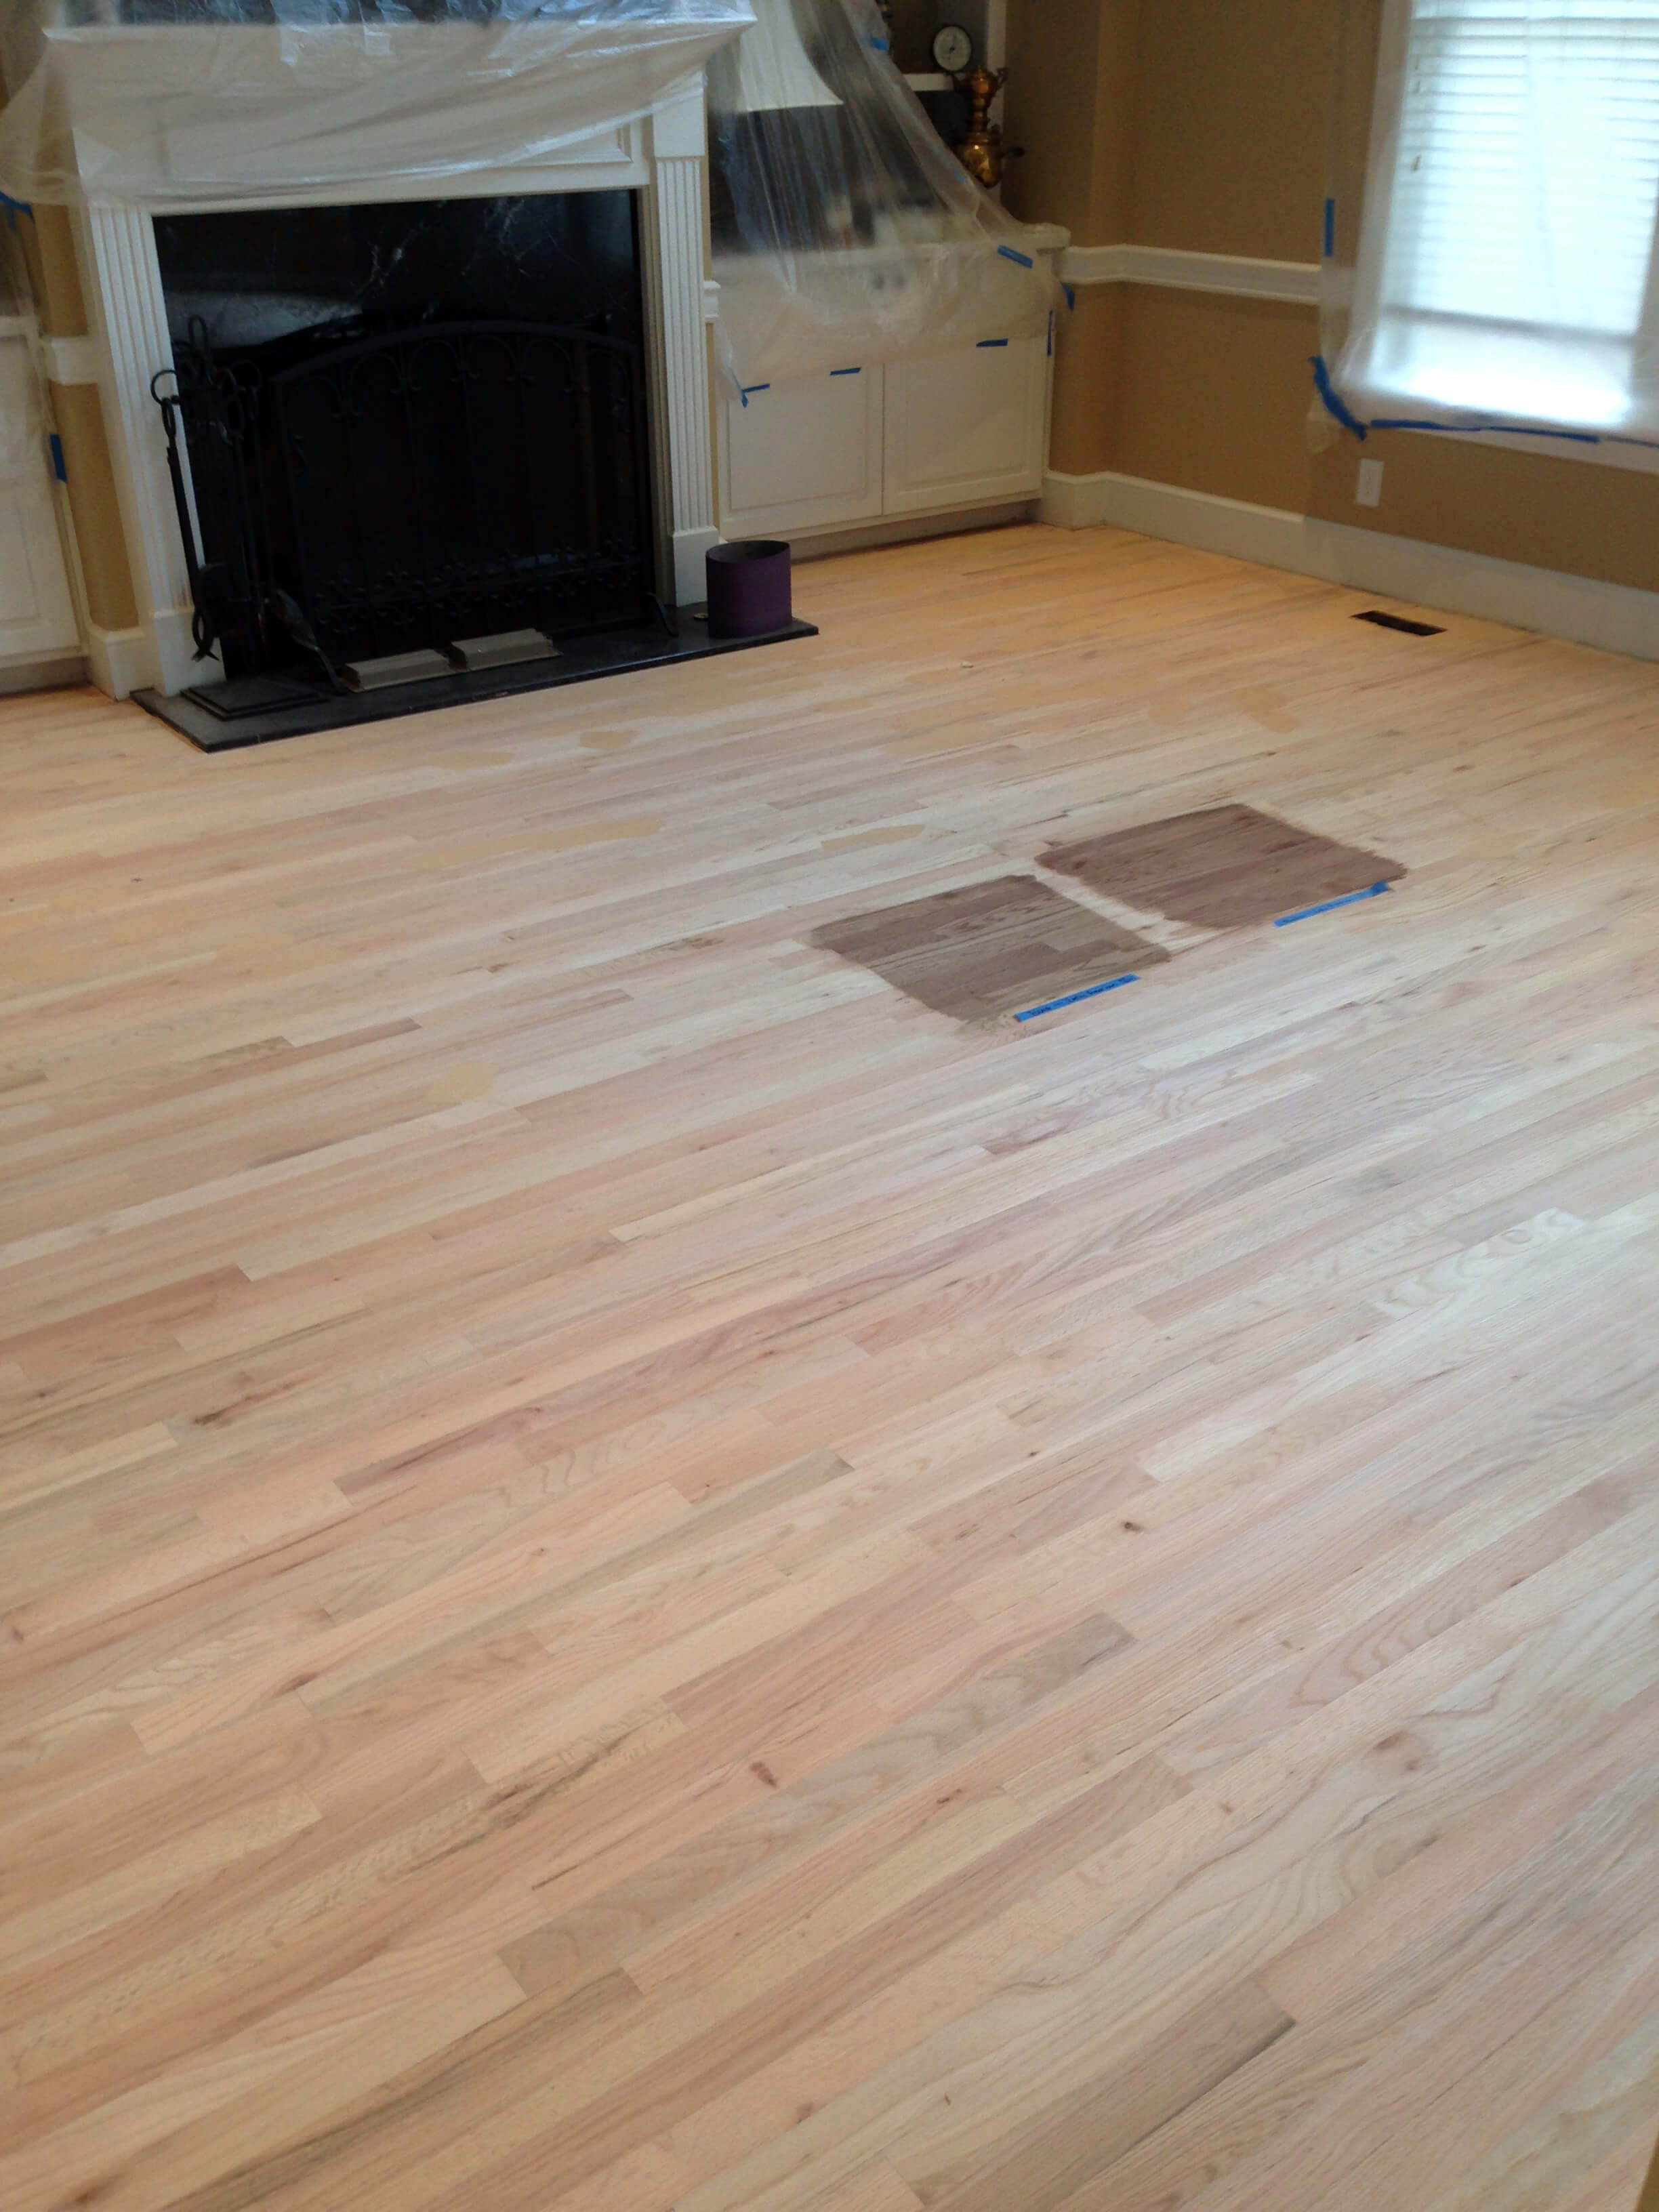 Hardwood Floor Installation Raleigh Nc Of Floor Refinishing Company Hardwood Floors Service by Cris Floor Intended for Floor Refinishing Company Refinish Hardwood Floors Peach Design Inc